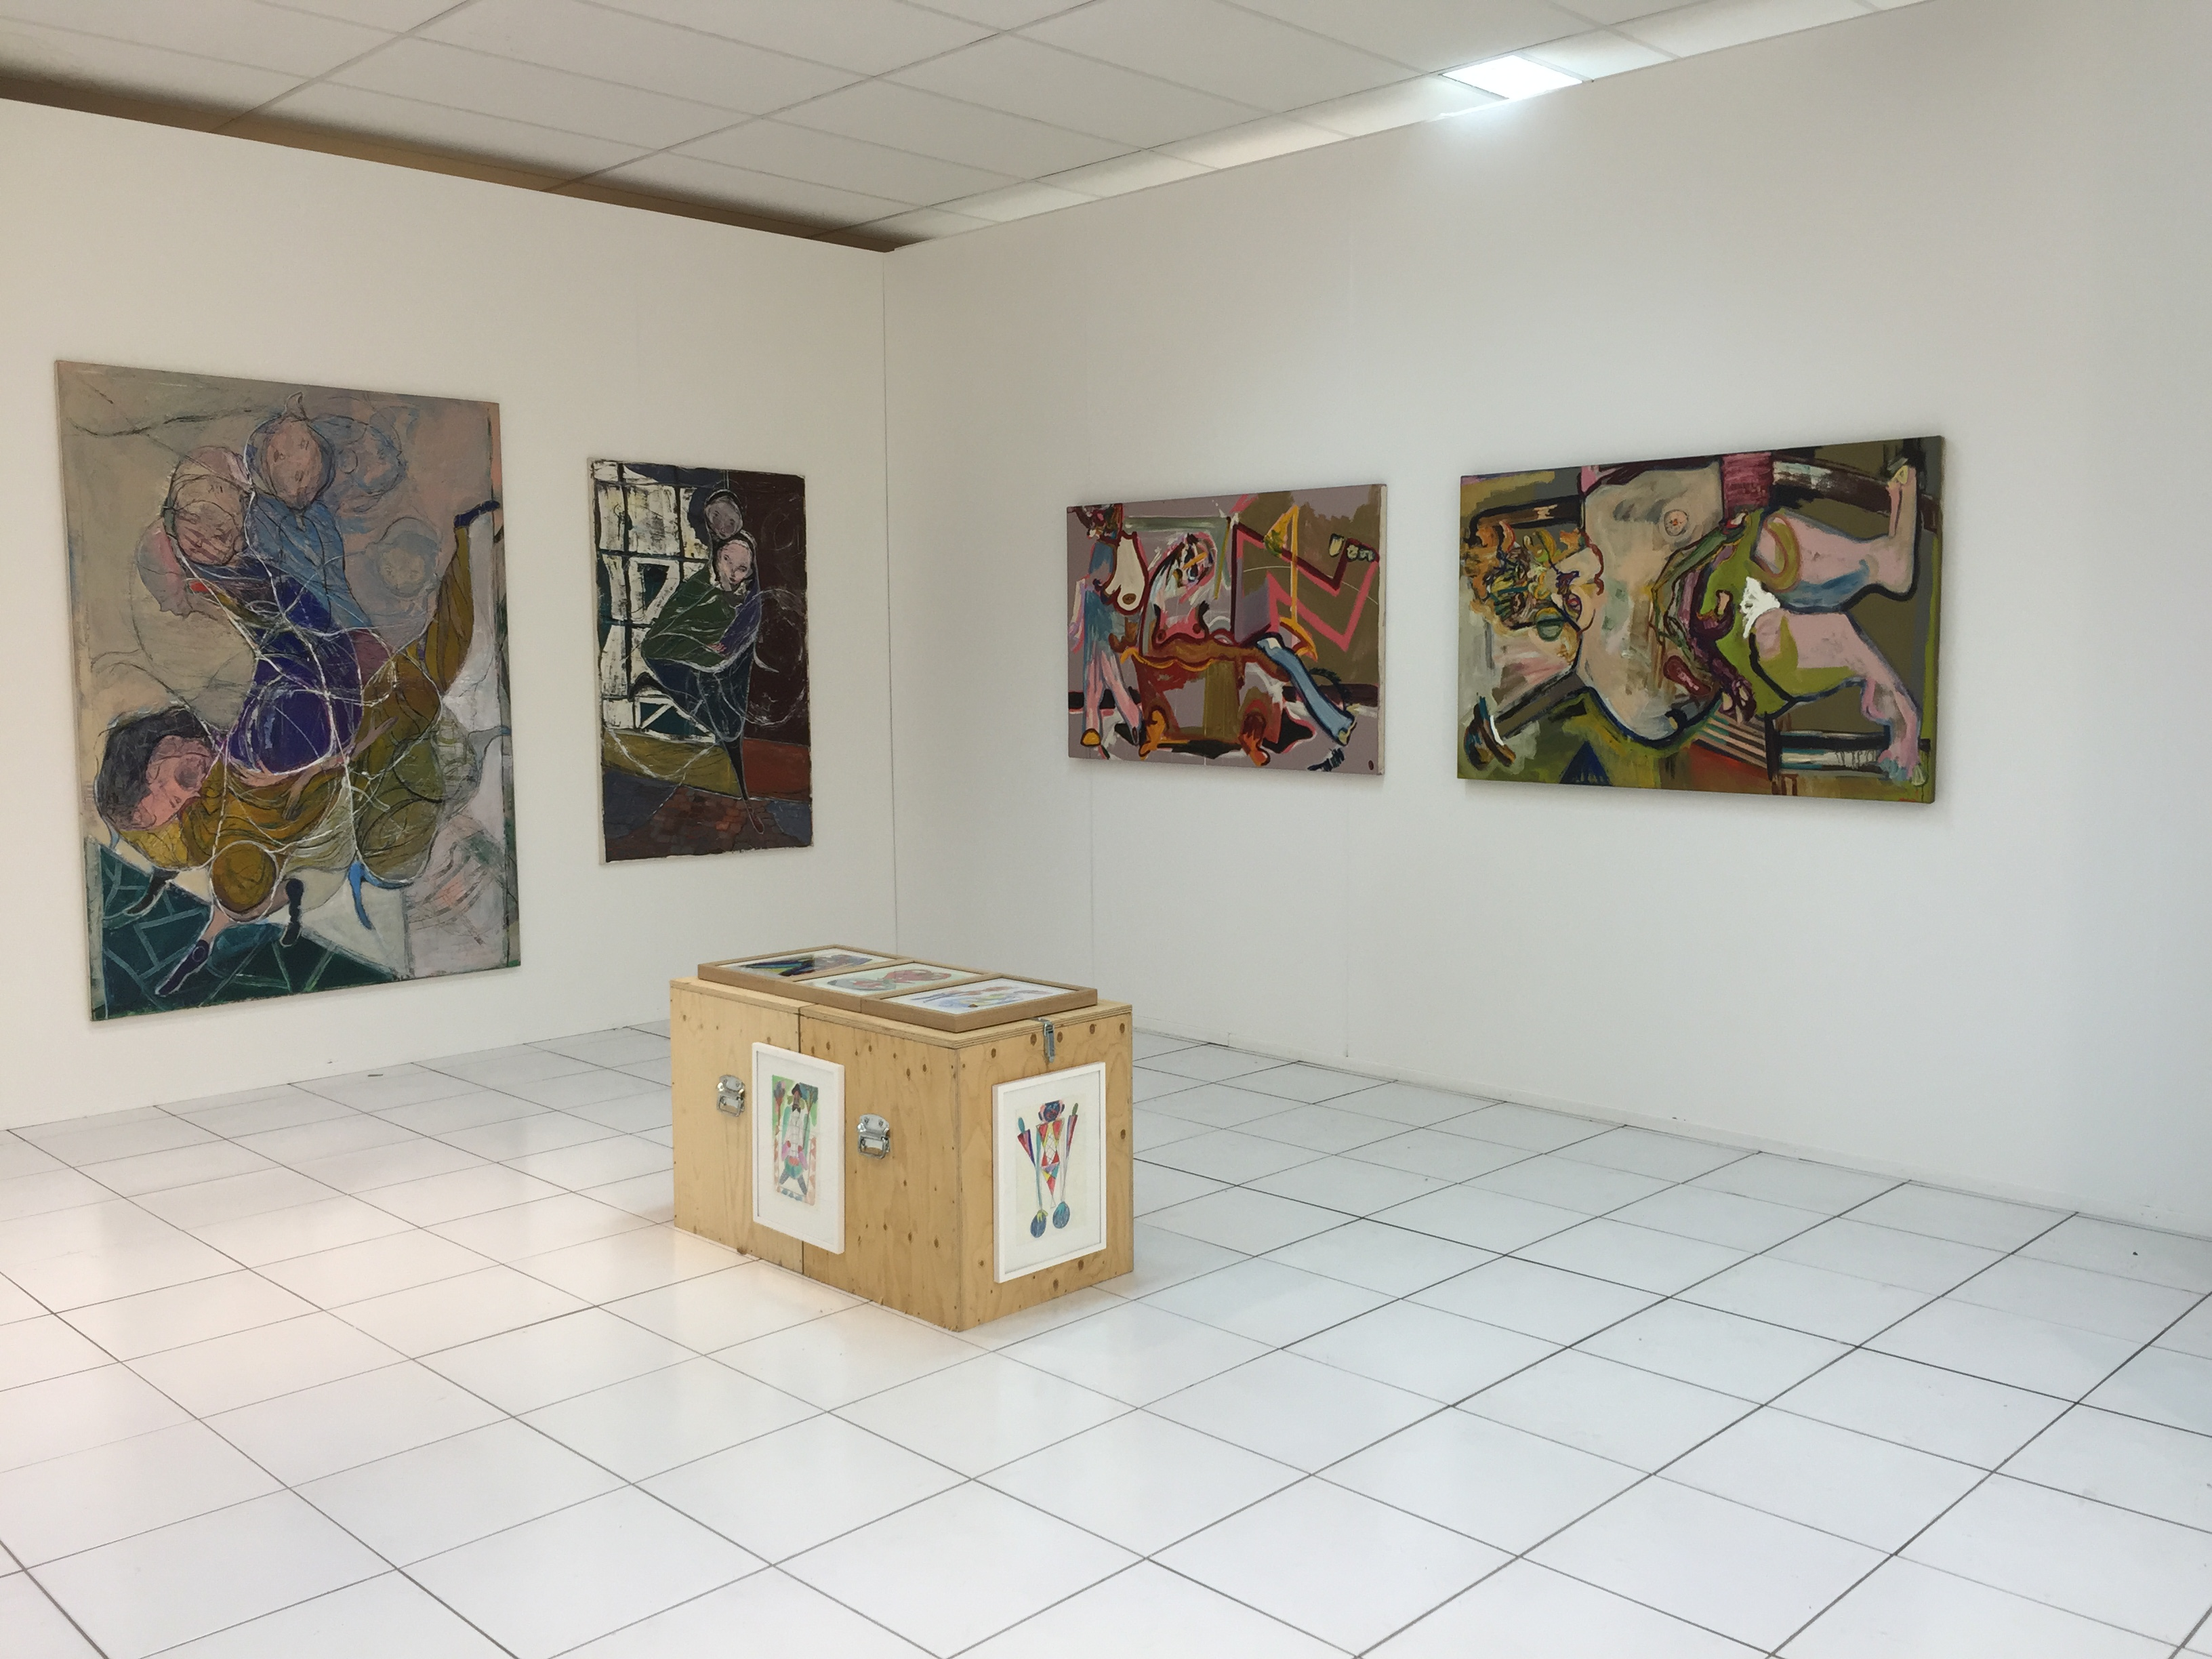 Exhibition view AAF 2015 - Ornis A. Gallery 8